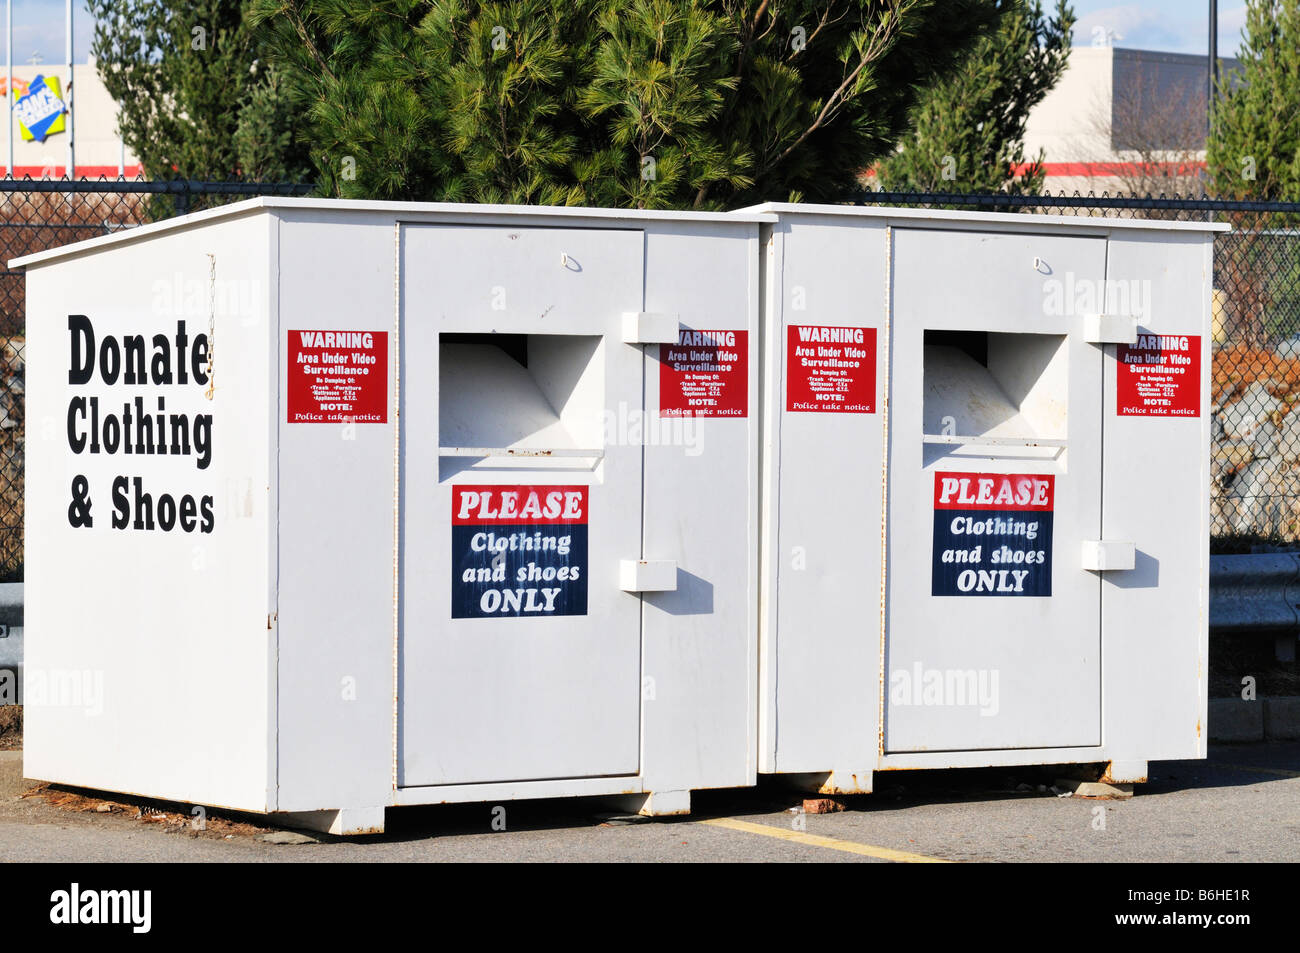 2 two donate clothing bins outside in parking lot - Stock Image